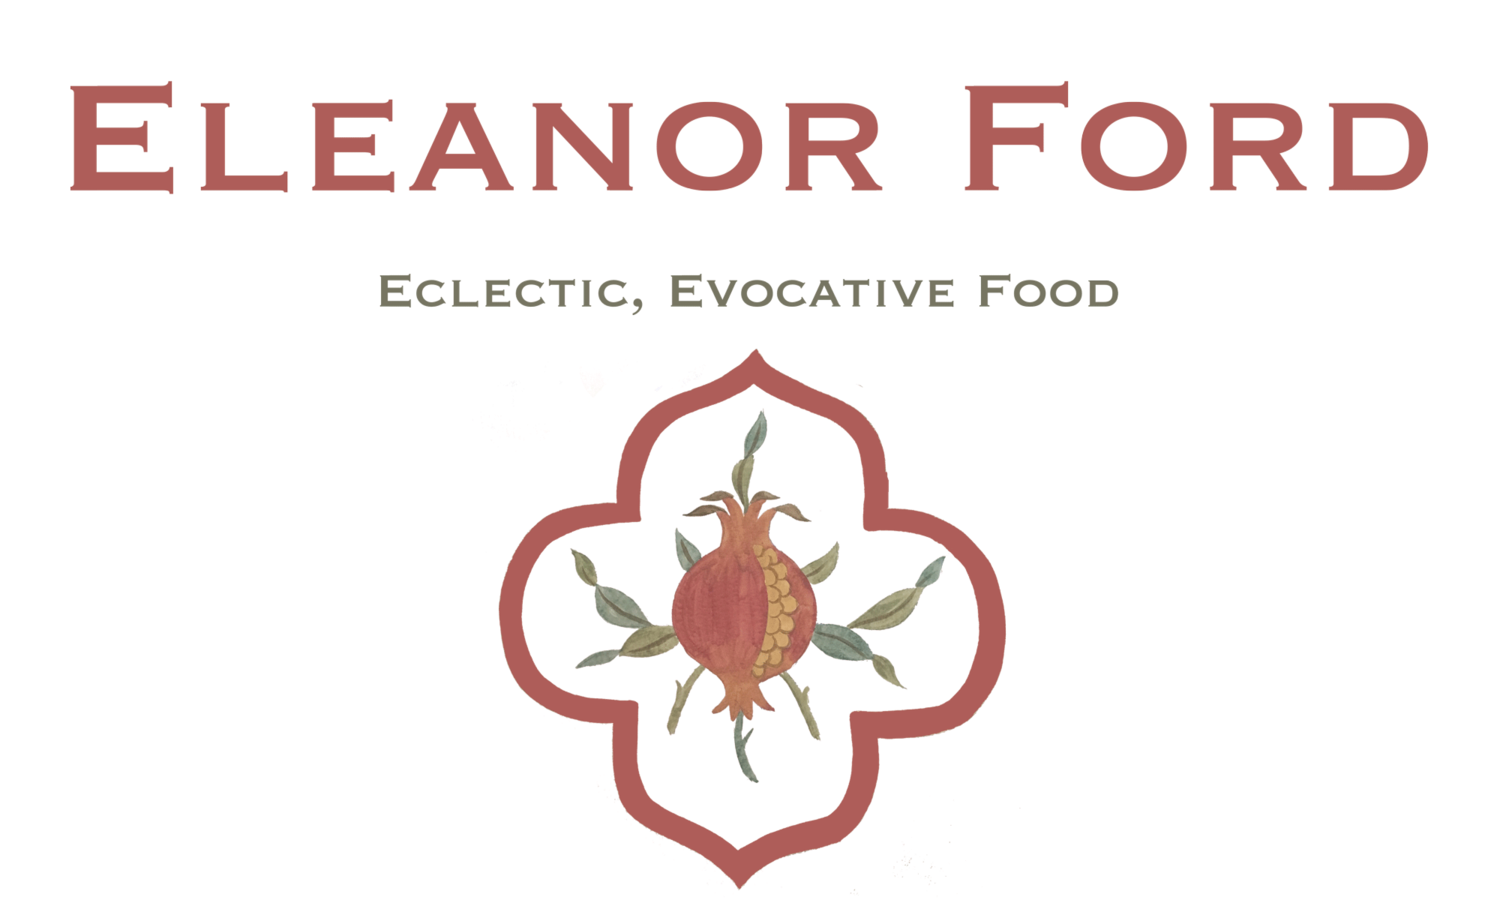 Eleanor Ford